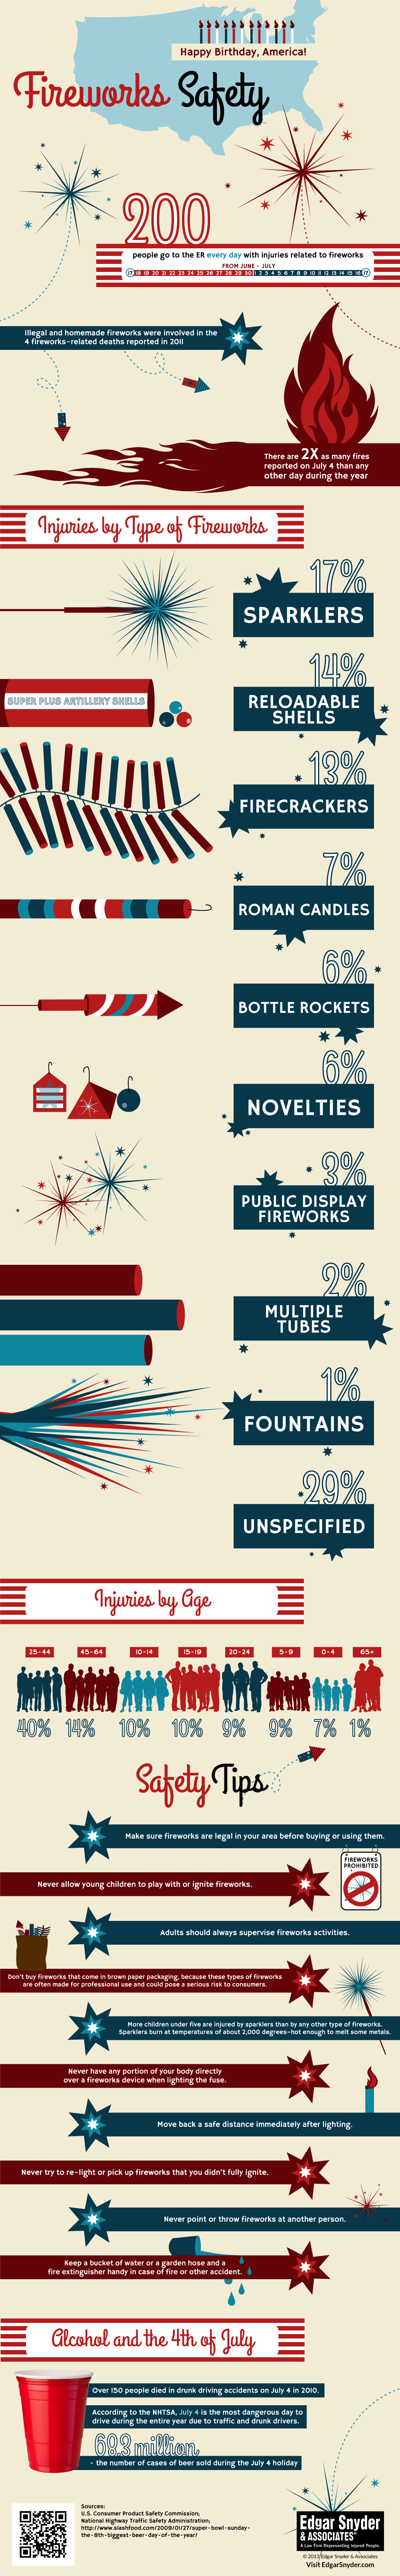 Firework Safety Infographic